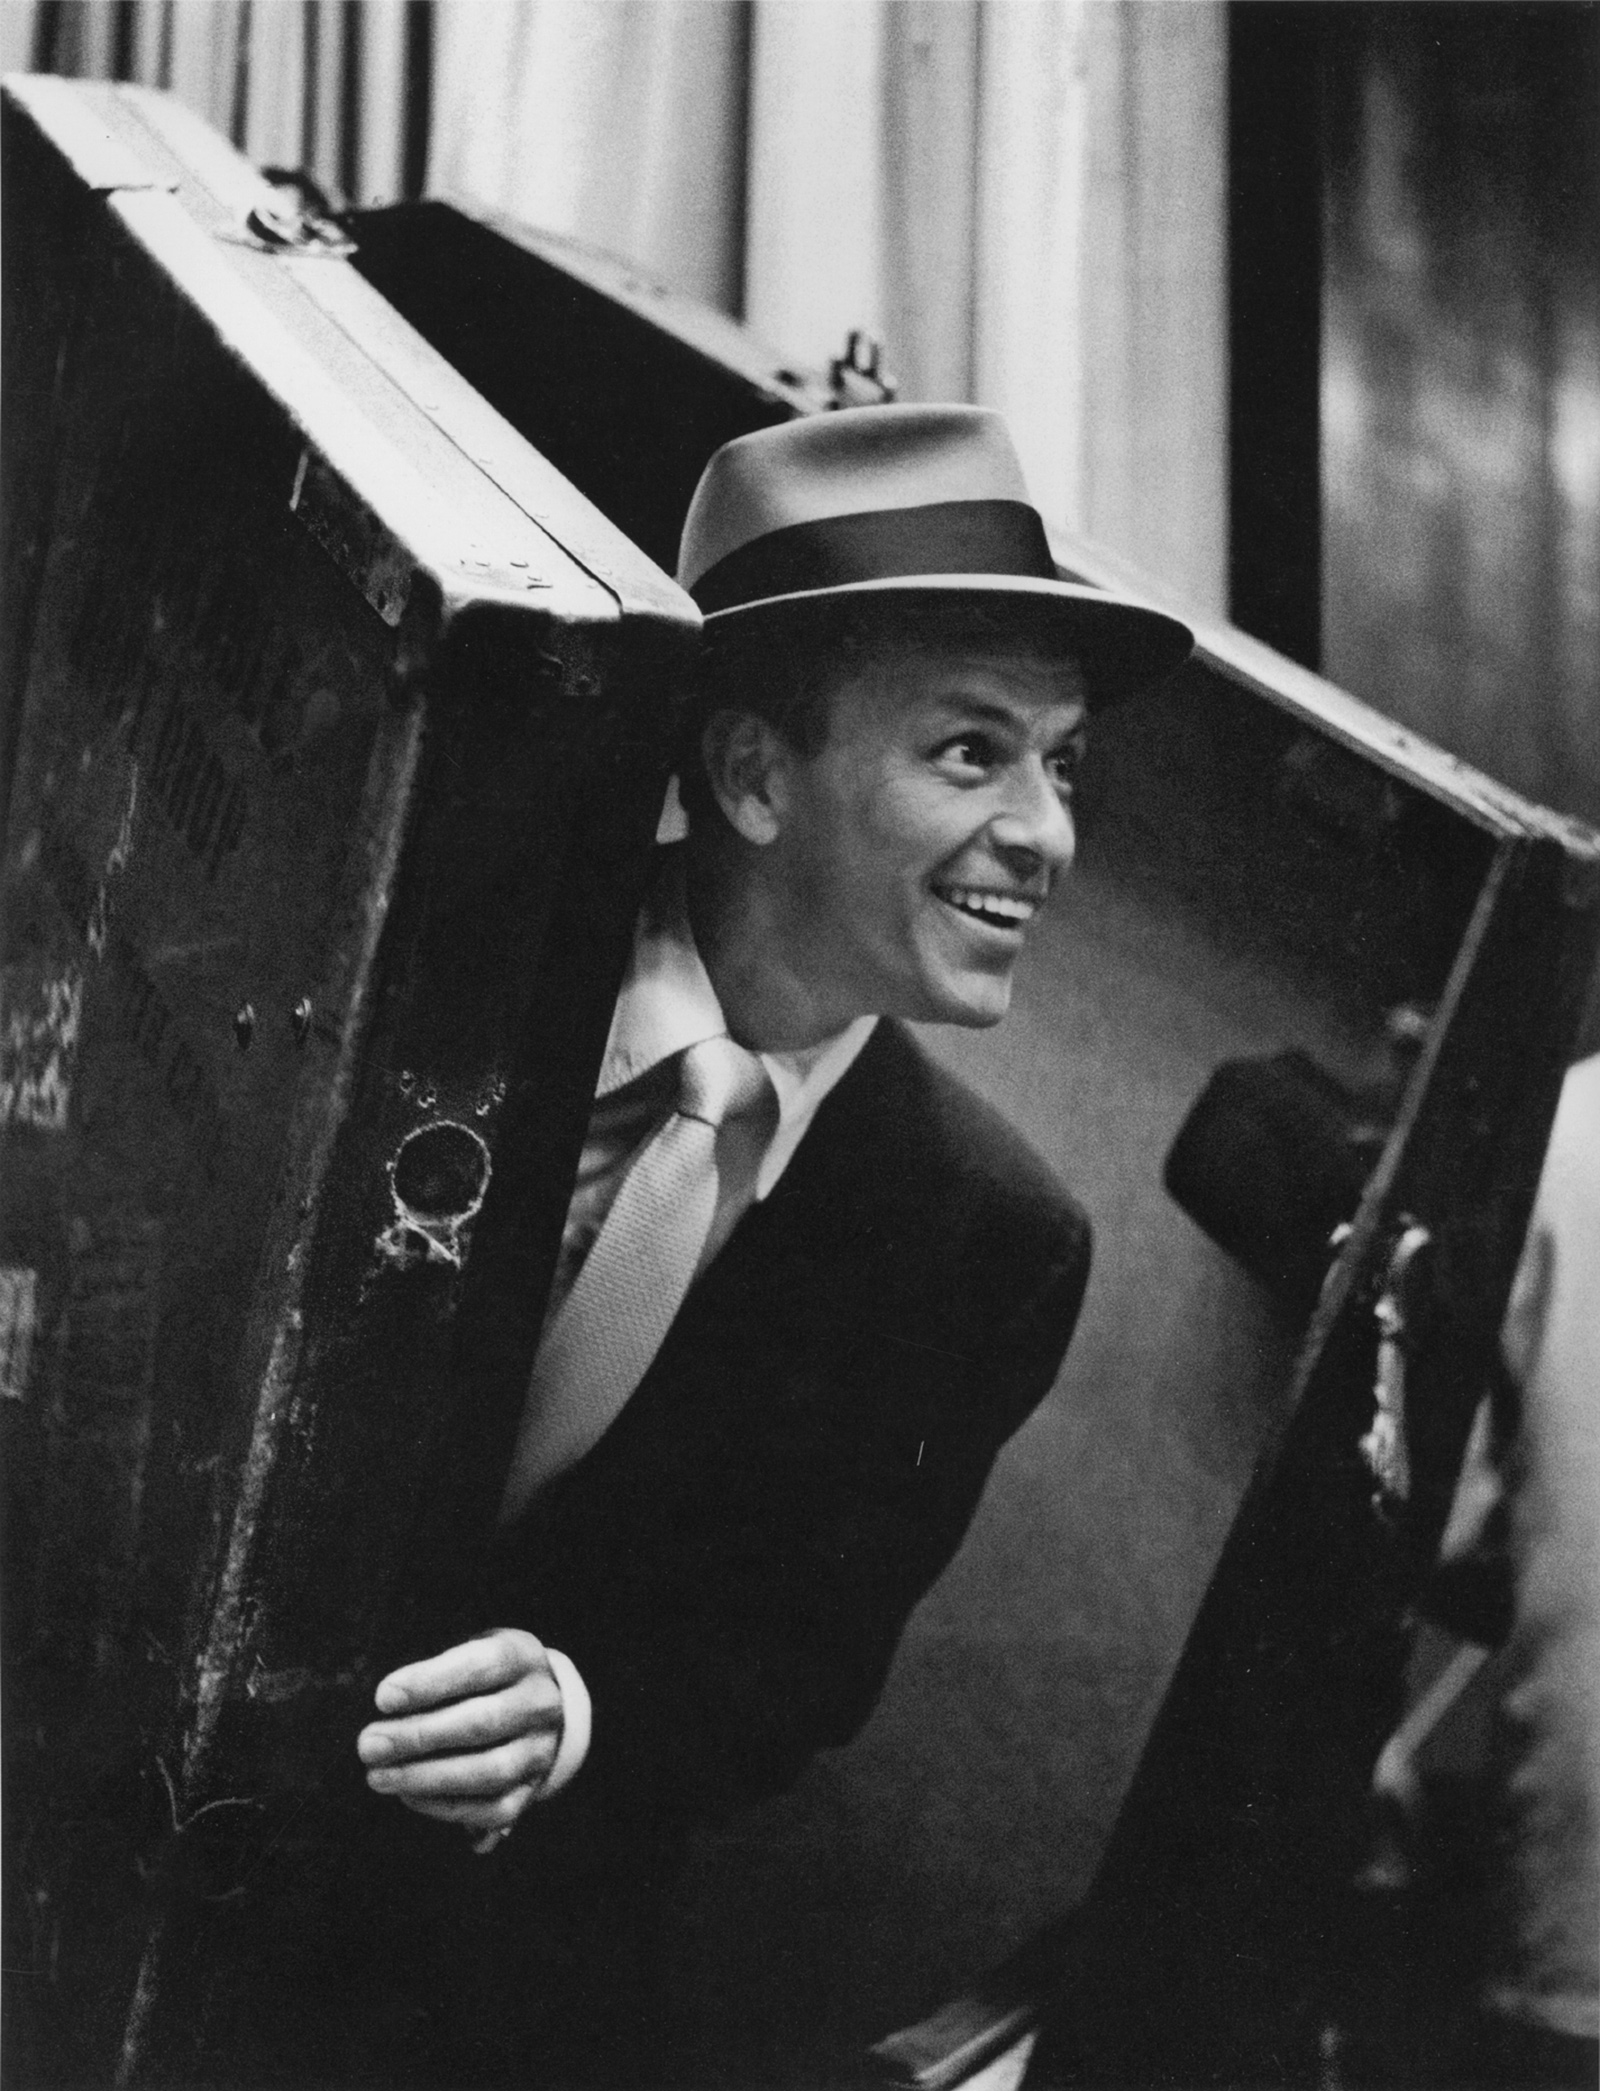 Frank Sinatra, Hollywood, 1955; photograph by William Claxton from Sinatra, a limited-edition book compiled by Amanda Erlinger and Robin Morgan, published by ACC Editions